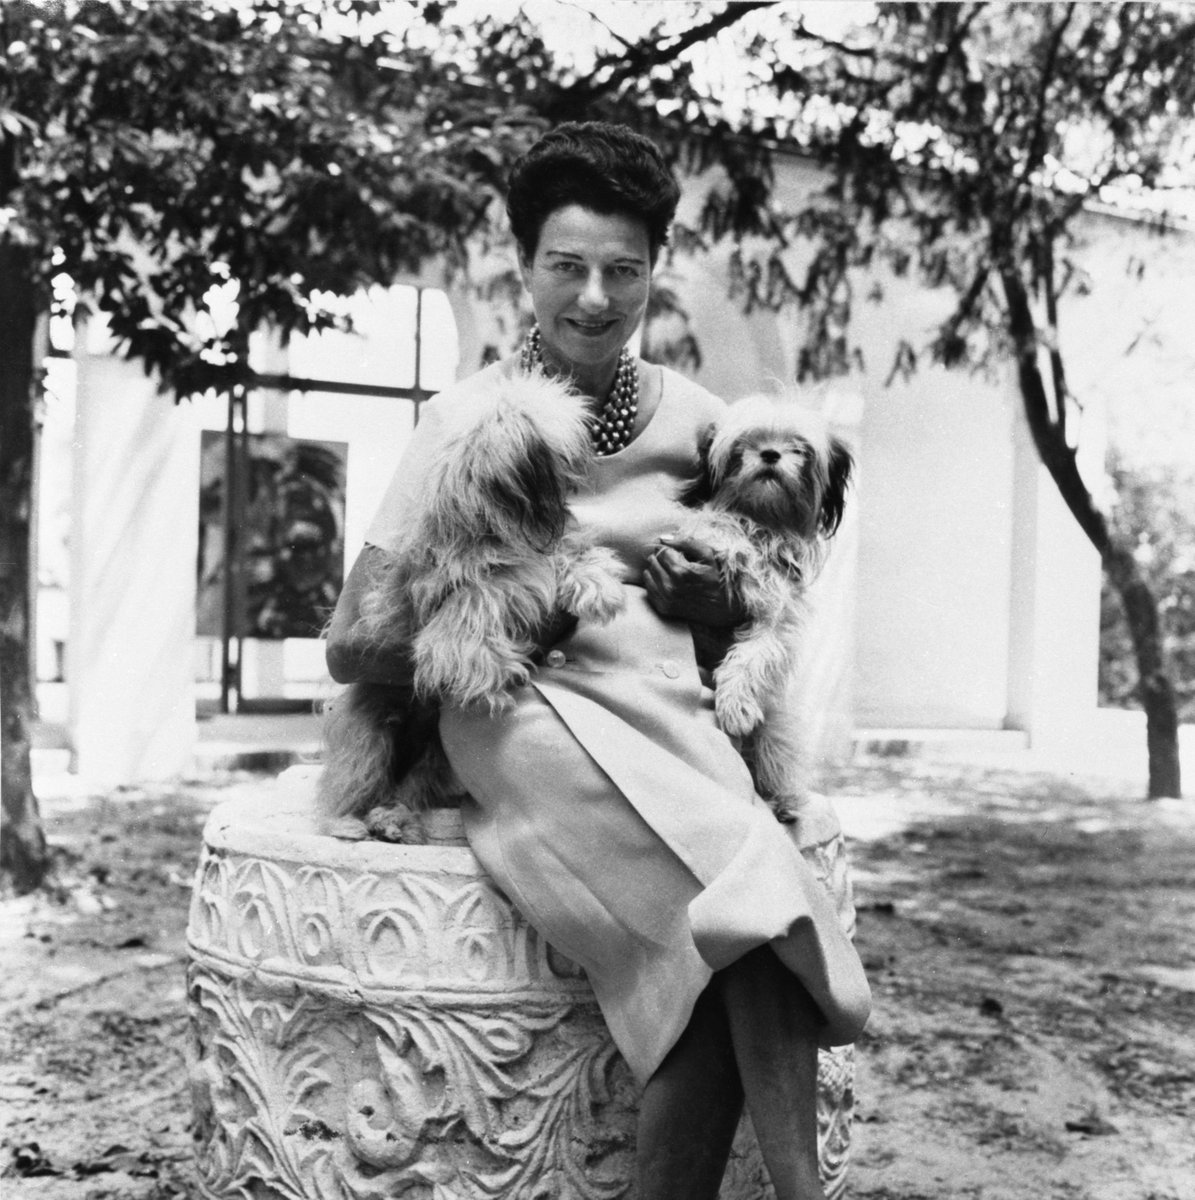 Guggenheim Museum On Twitter Photo Peggy Guggenheim In The Garden Of Palazzo Venier Dei Leoni Venice 1950s Behind Her Karel Appel The Crying Crocodile Tries To Catch The Sun 1956 Photo Roloff